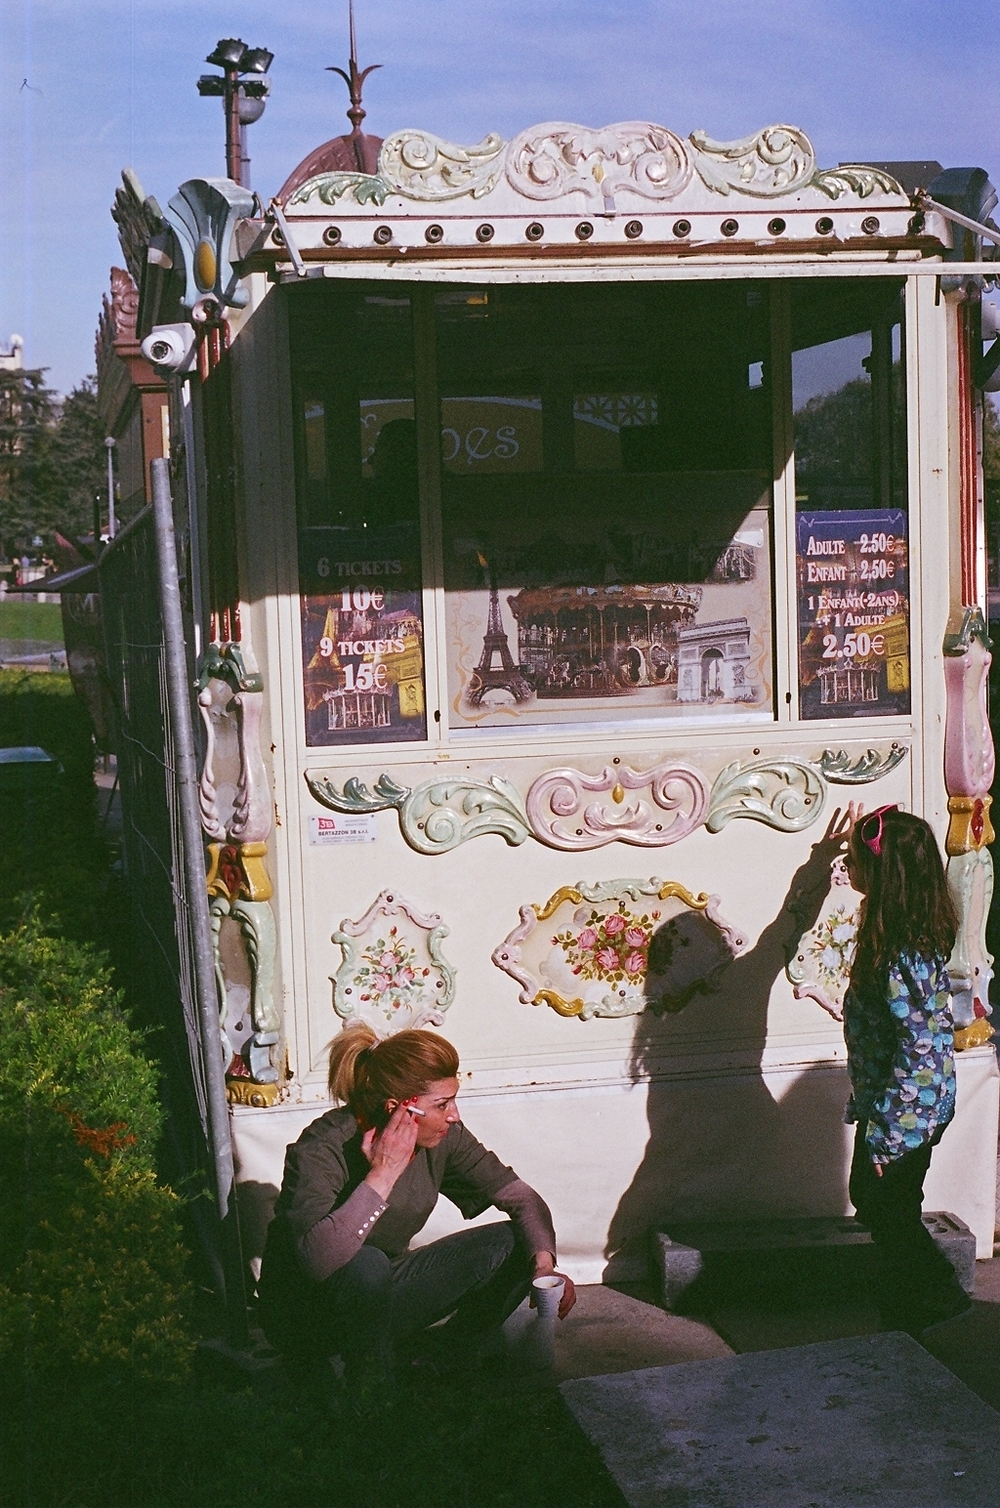 (October 29th 2014) Mother and daughter rest behind a crepe stand before finishing the day touring Paris, France.